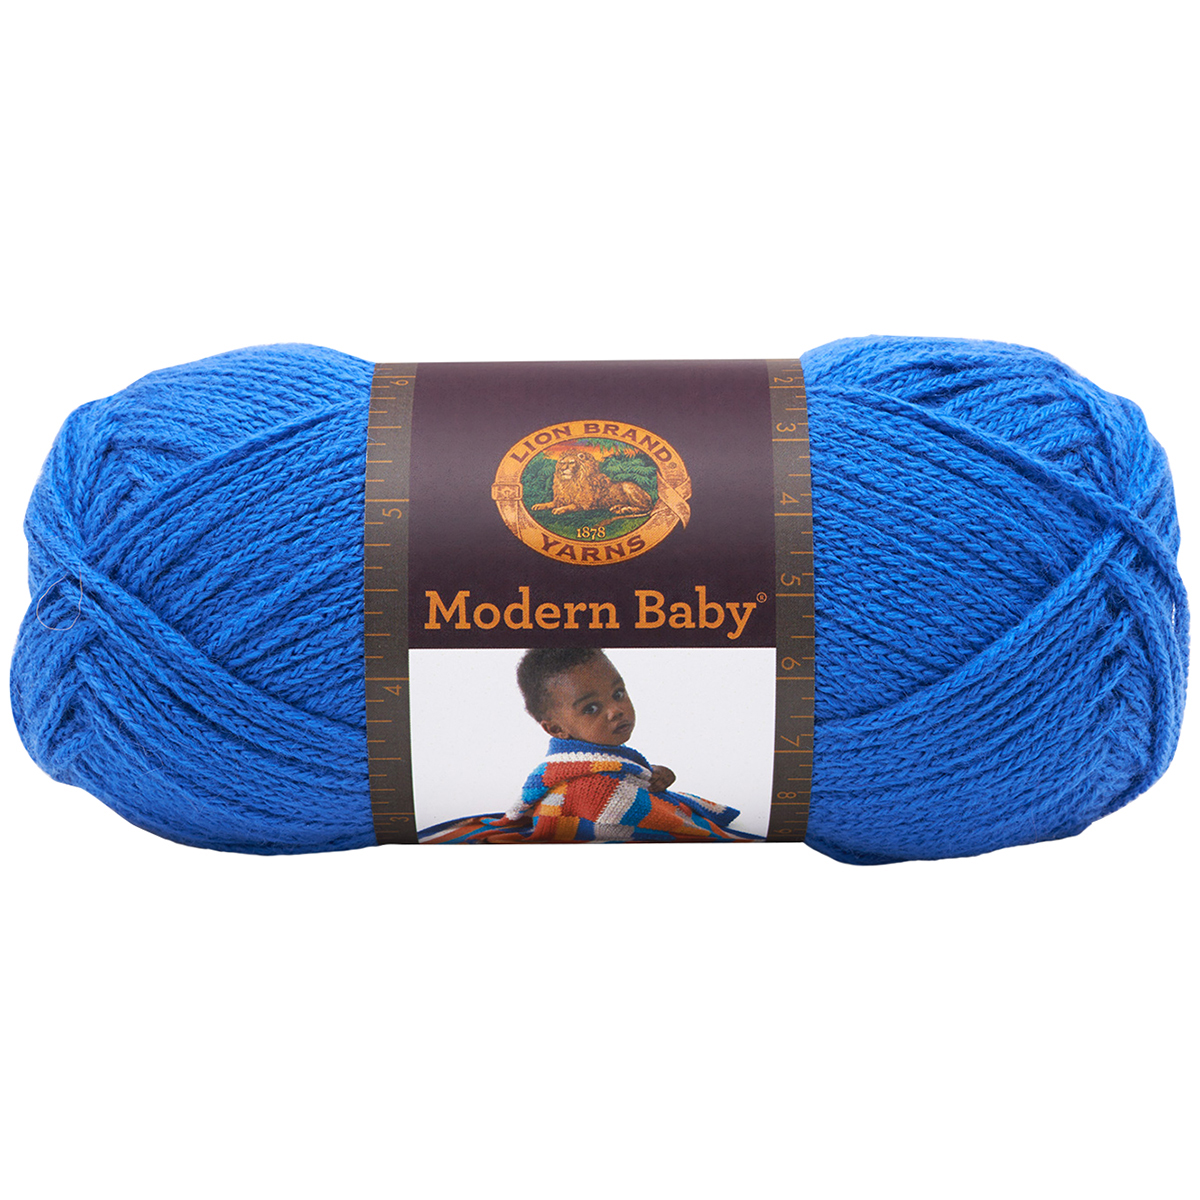 Knitting Yarn Brands : Yarn Weights Search our store by Knitting Yarn Weight ? Yarn ...